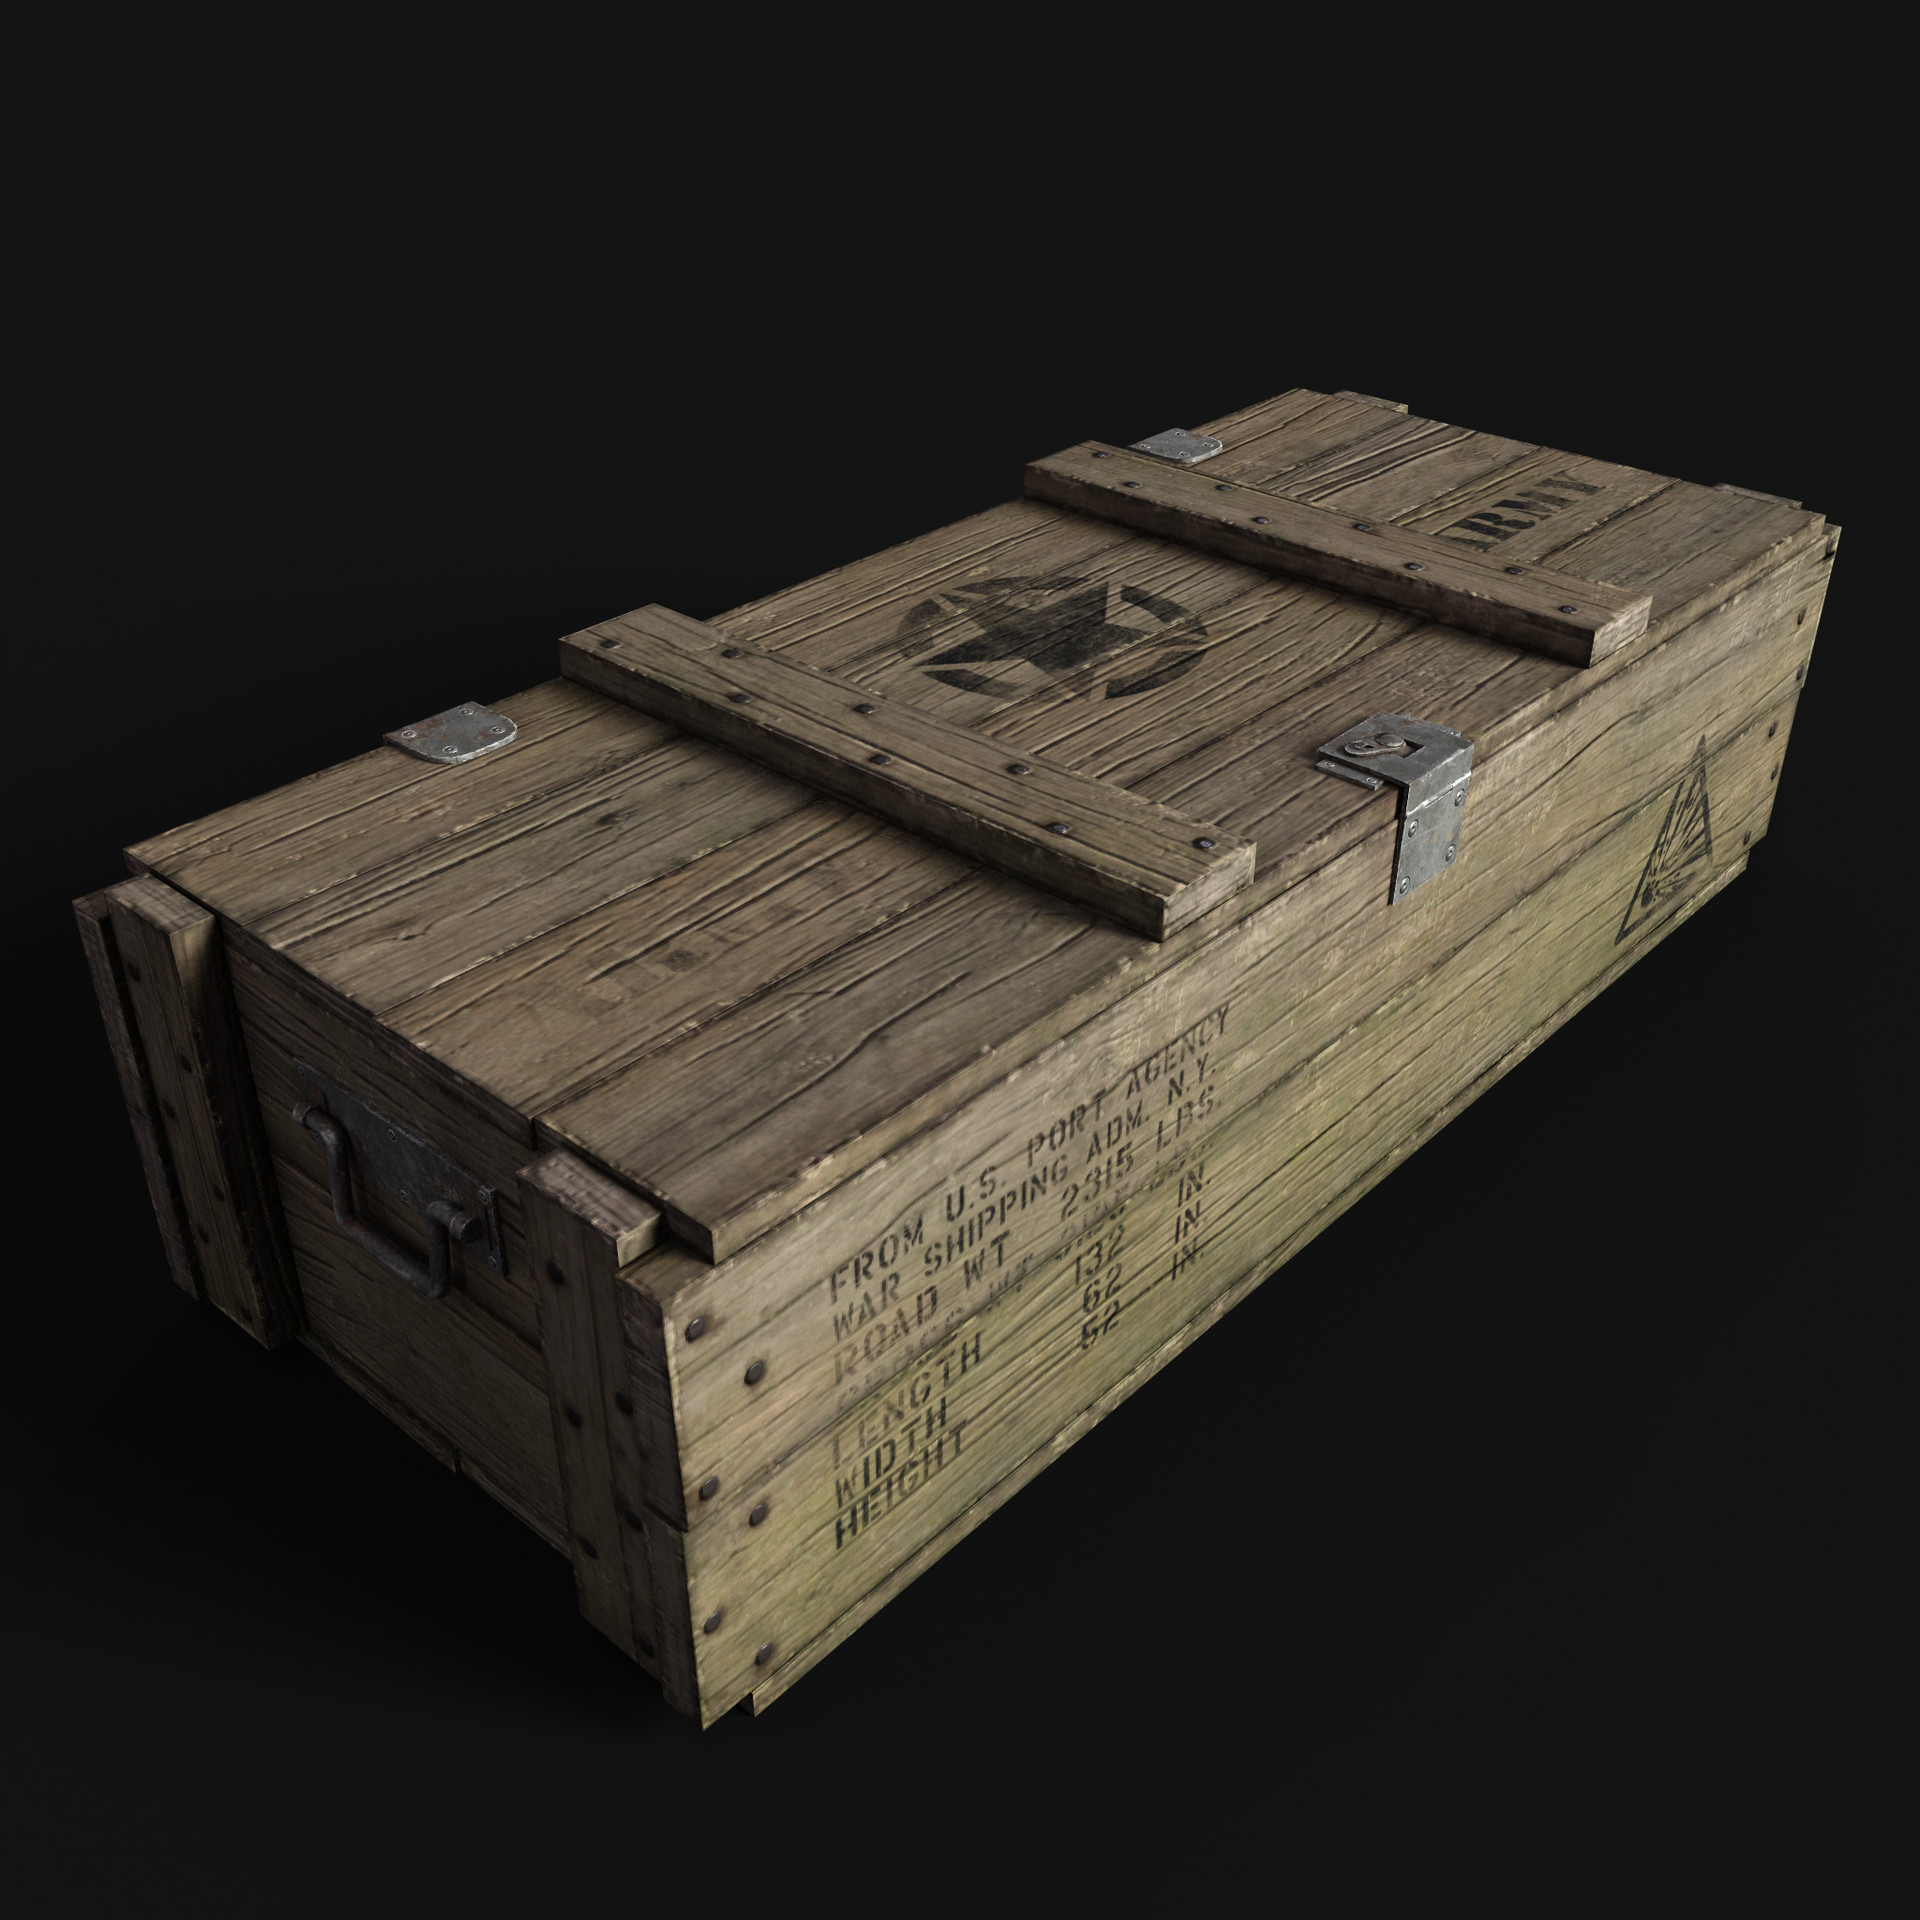 Artstation Military Wooden Crate Diego López